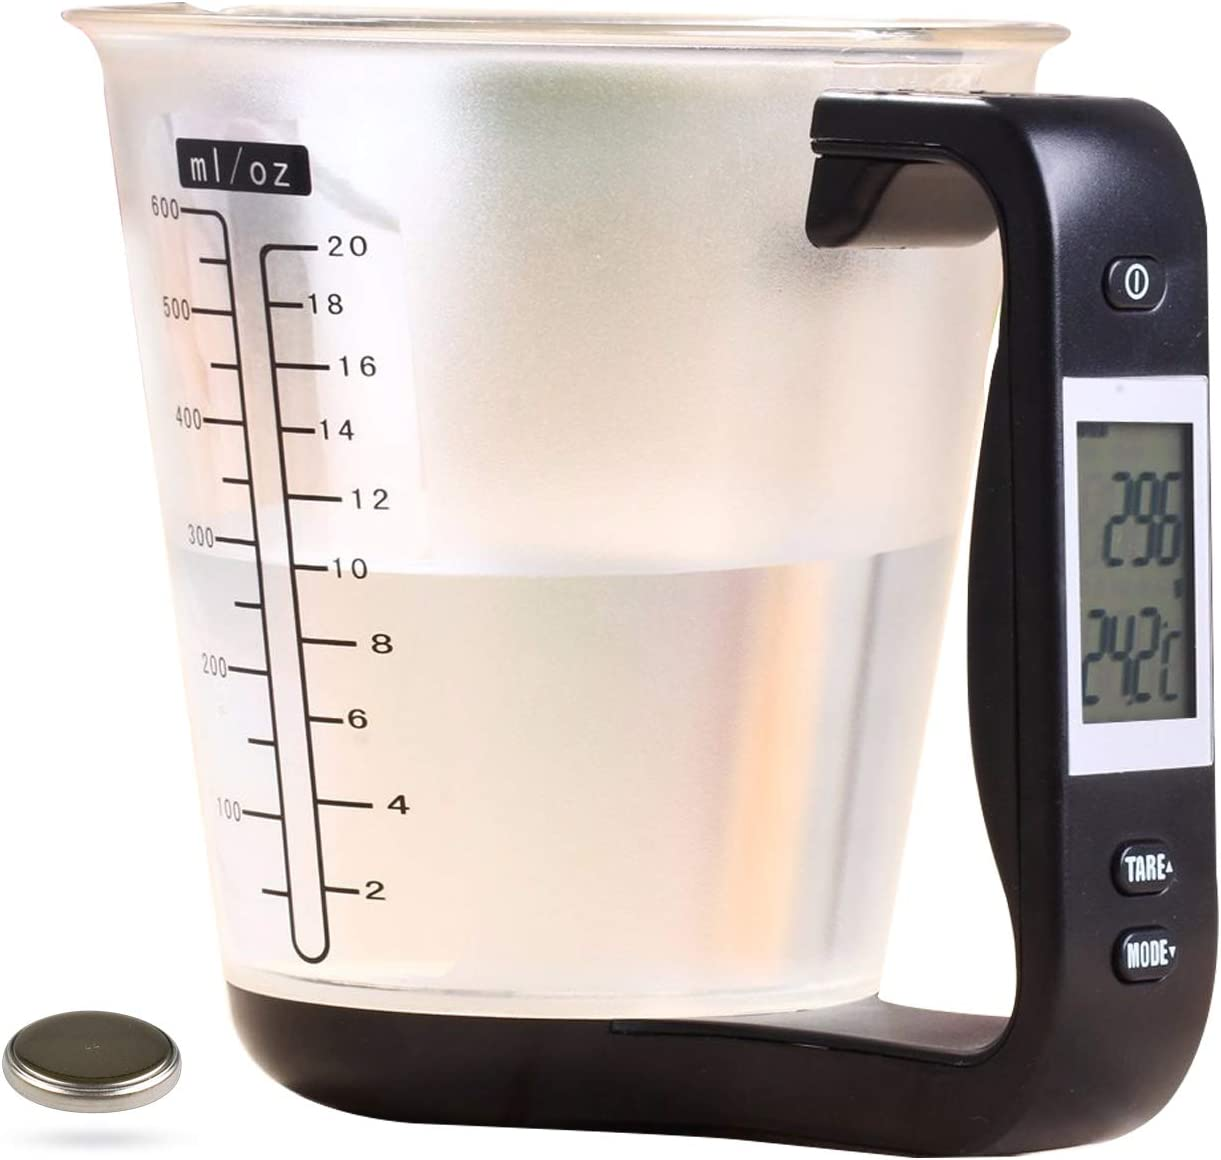 Kitchen Scale Digital Measuring Cup 1kg/600ml Food Scale Weight Scale Scales Weighing Water Milk Flour Sugar Oil Coffee Liquid Baking Cooking Plastic Measuring Cups Grams and Ounces (Black)